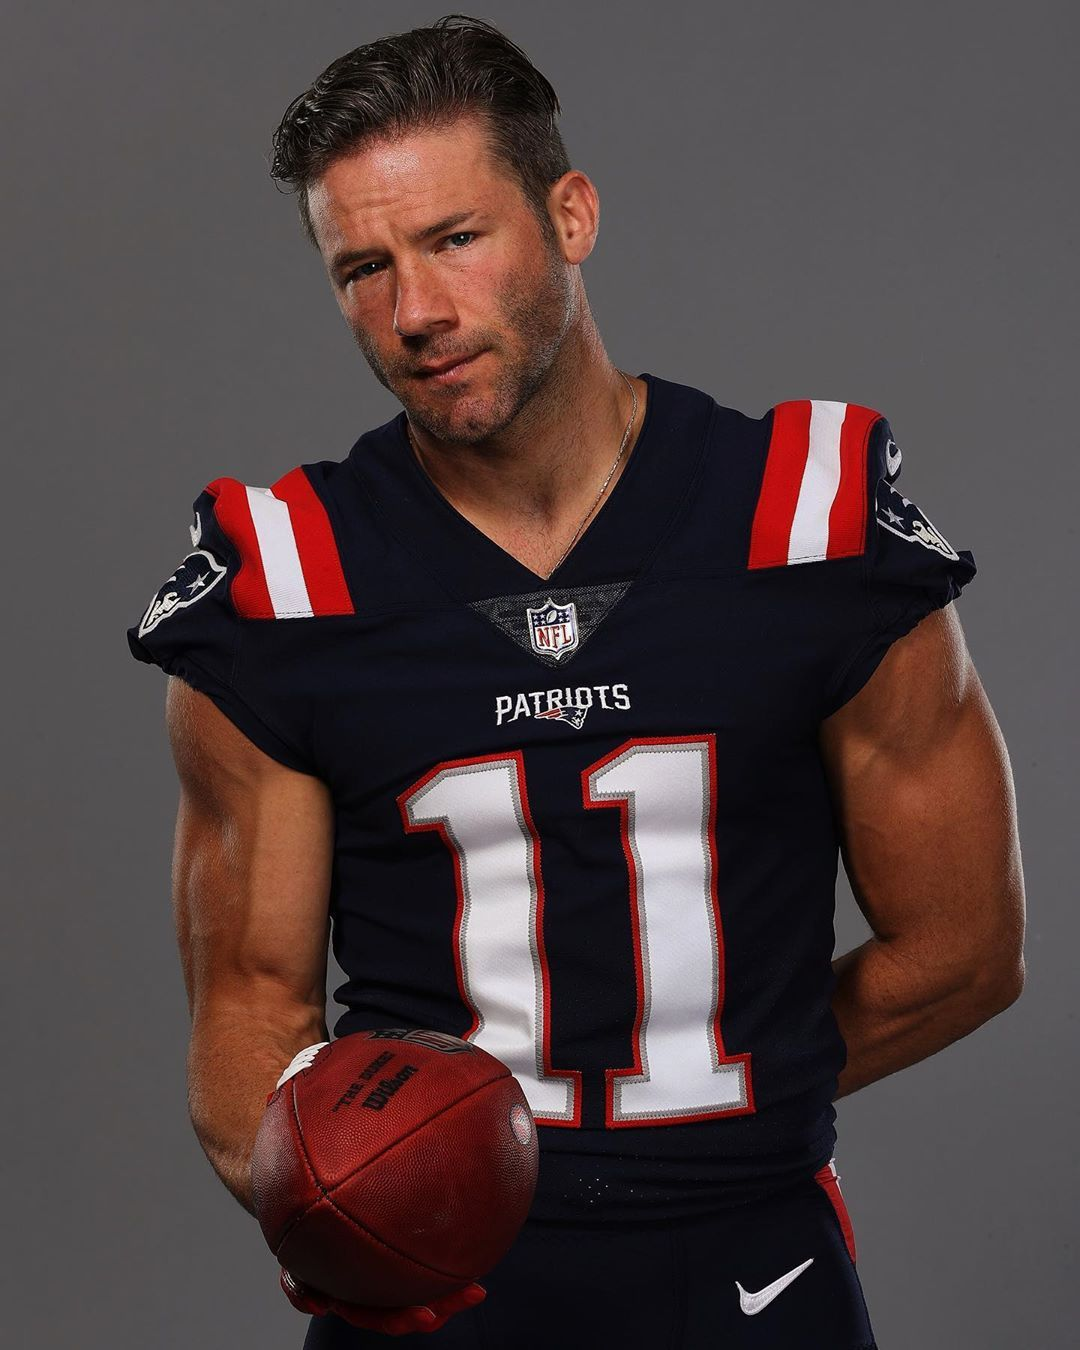 Pin On Mi Judio Favorito Julian Edelman